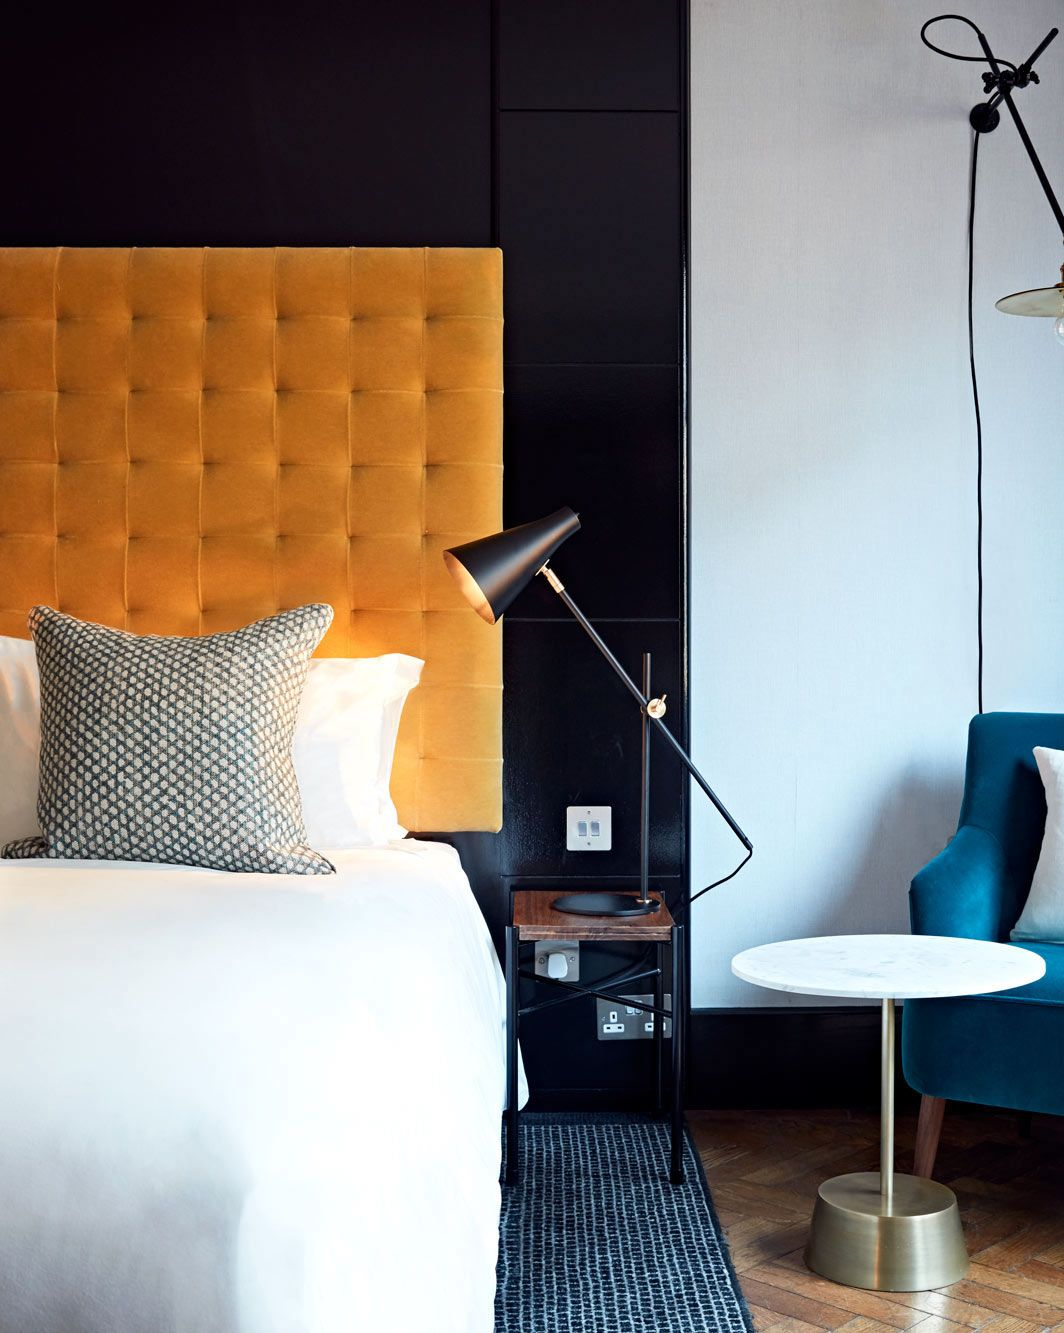 Shoreditch Design Rooms: Our Roomy Room Over At The Hoxton, Shoreditch